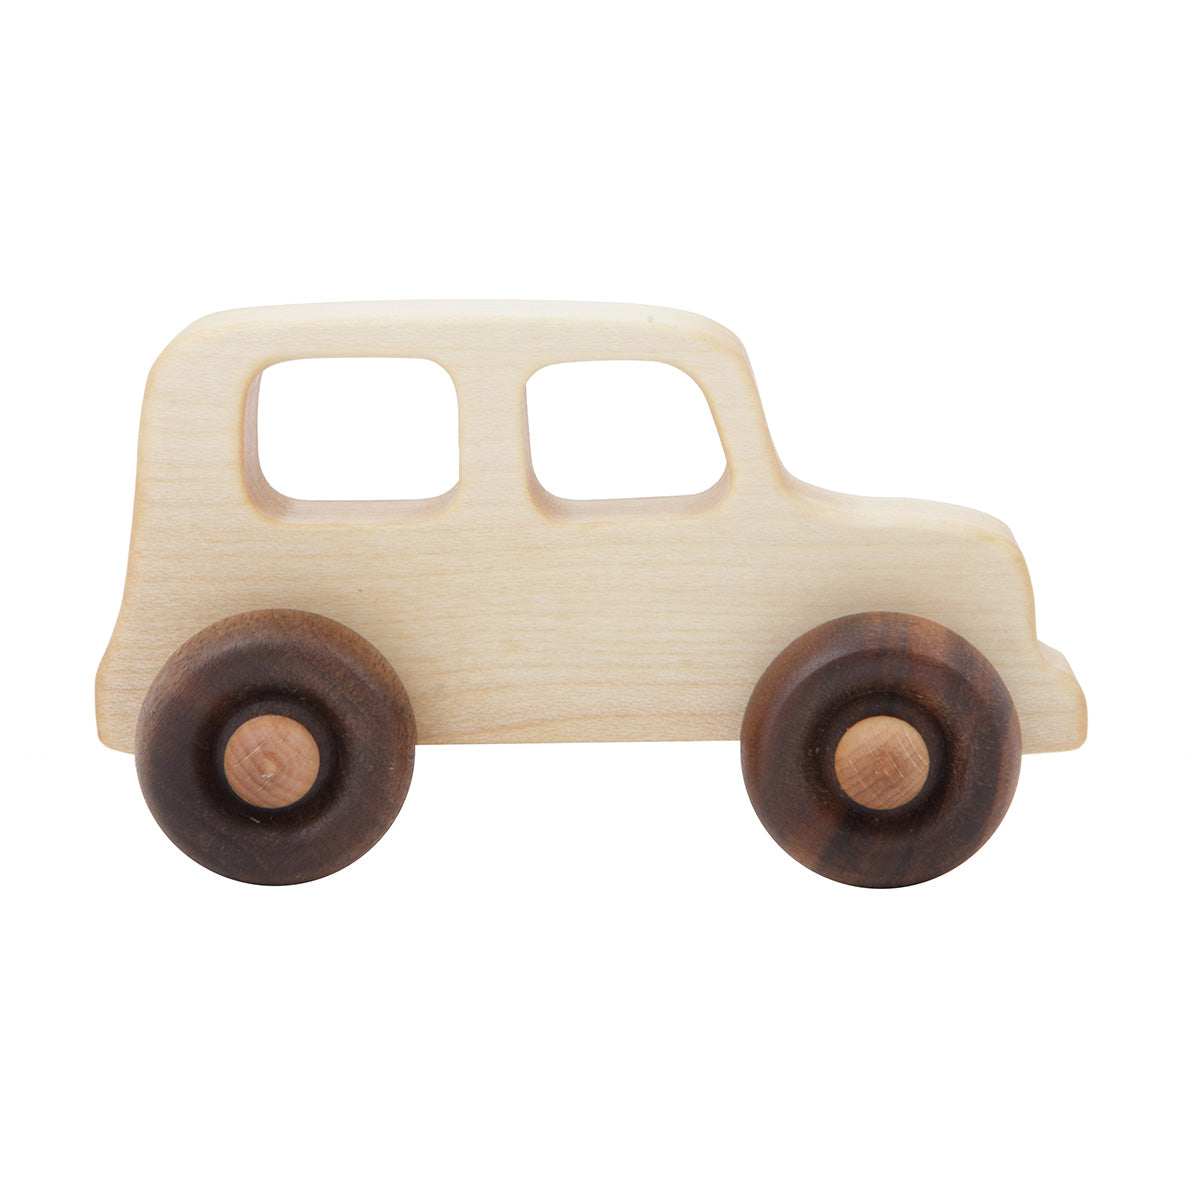 Wooden Story Off Road Vehicle - wooden car -Wooden Story-Natural Play-Natural Nursery - Play-Handmade---Eco Friendly Toys - Eco Friendly Play - Handmade -Sustainable Design